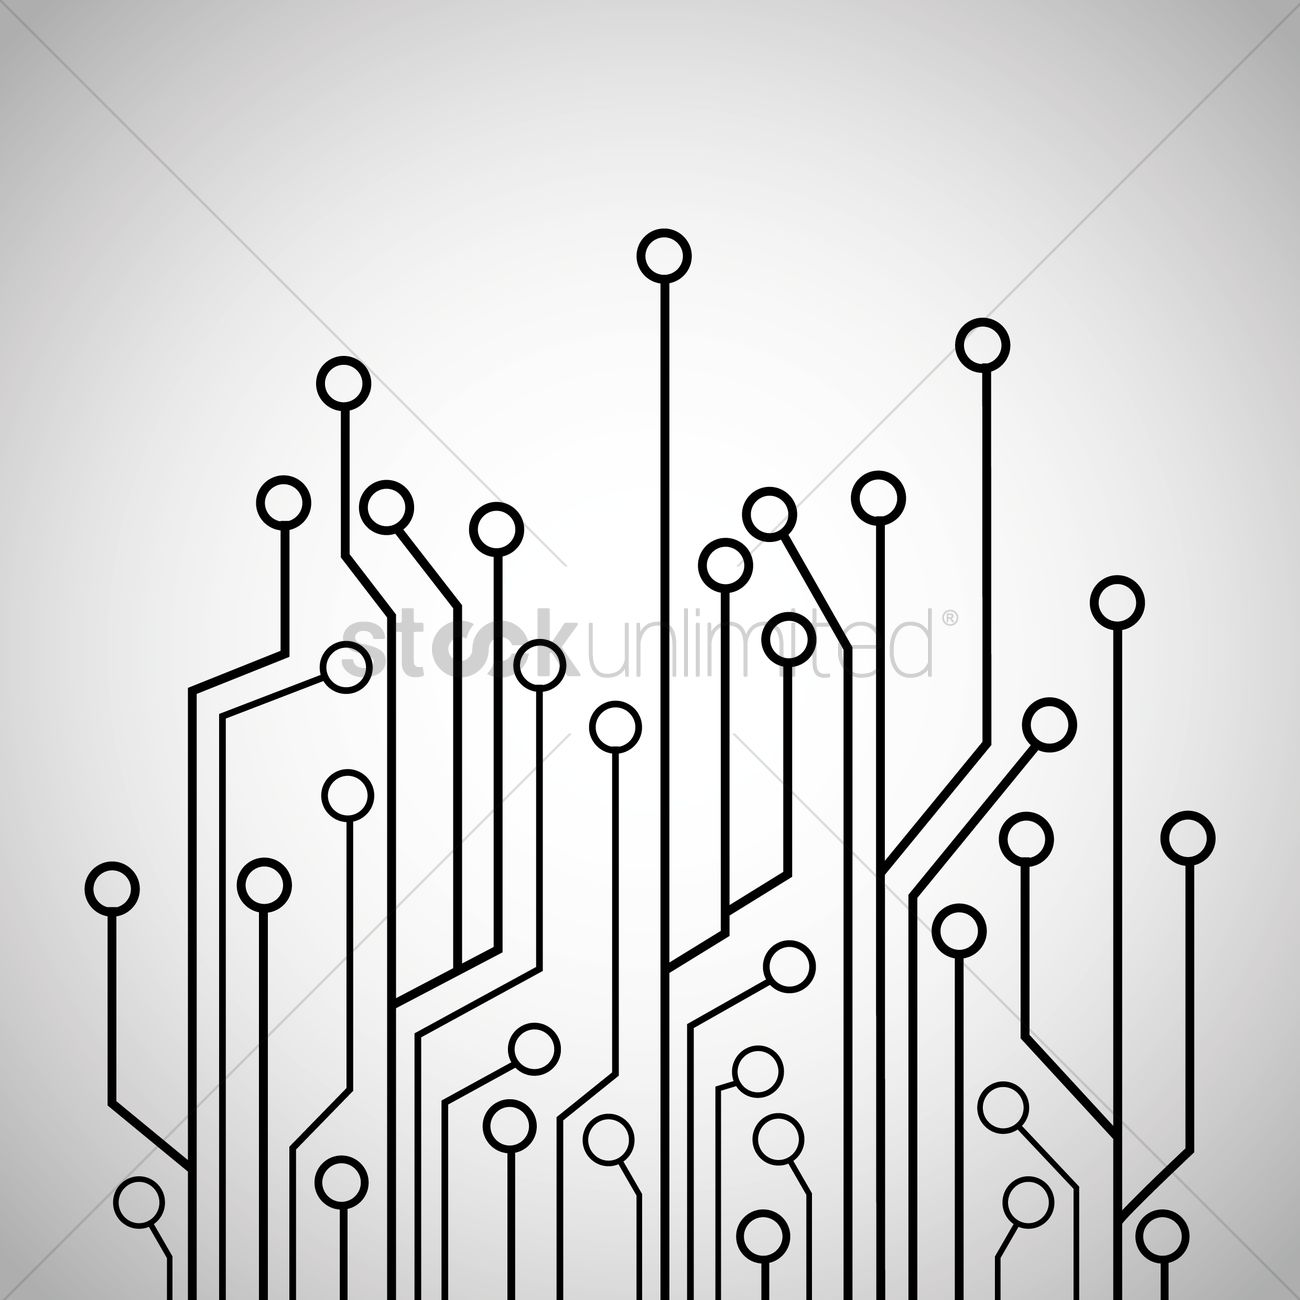 Circuit Board Tree Design Vector Image 1647141 Stockunlimited Background Ai Free Graphics Download Graphic